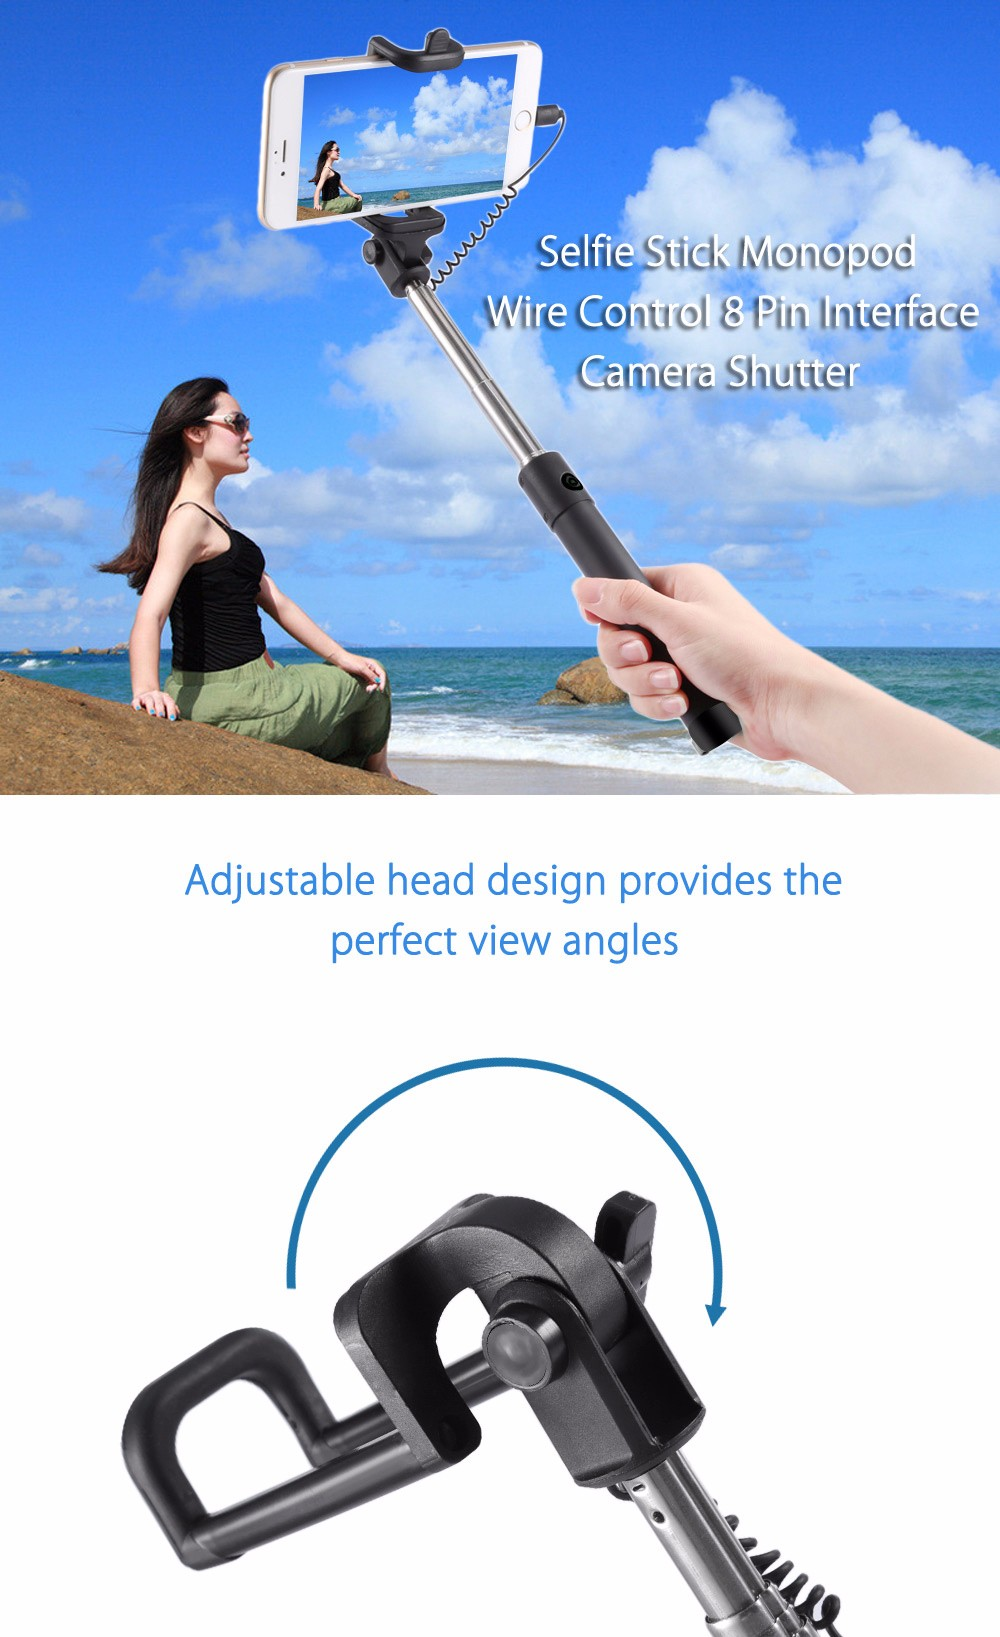 Selfie Stick Monopod Wire Control 8 Pin Interface Camera Shutter